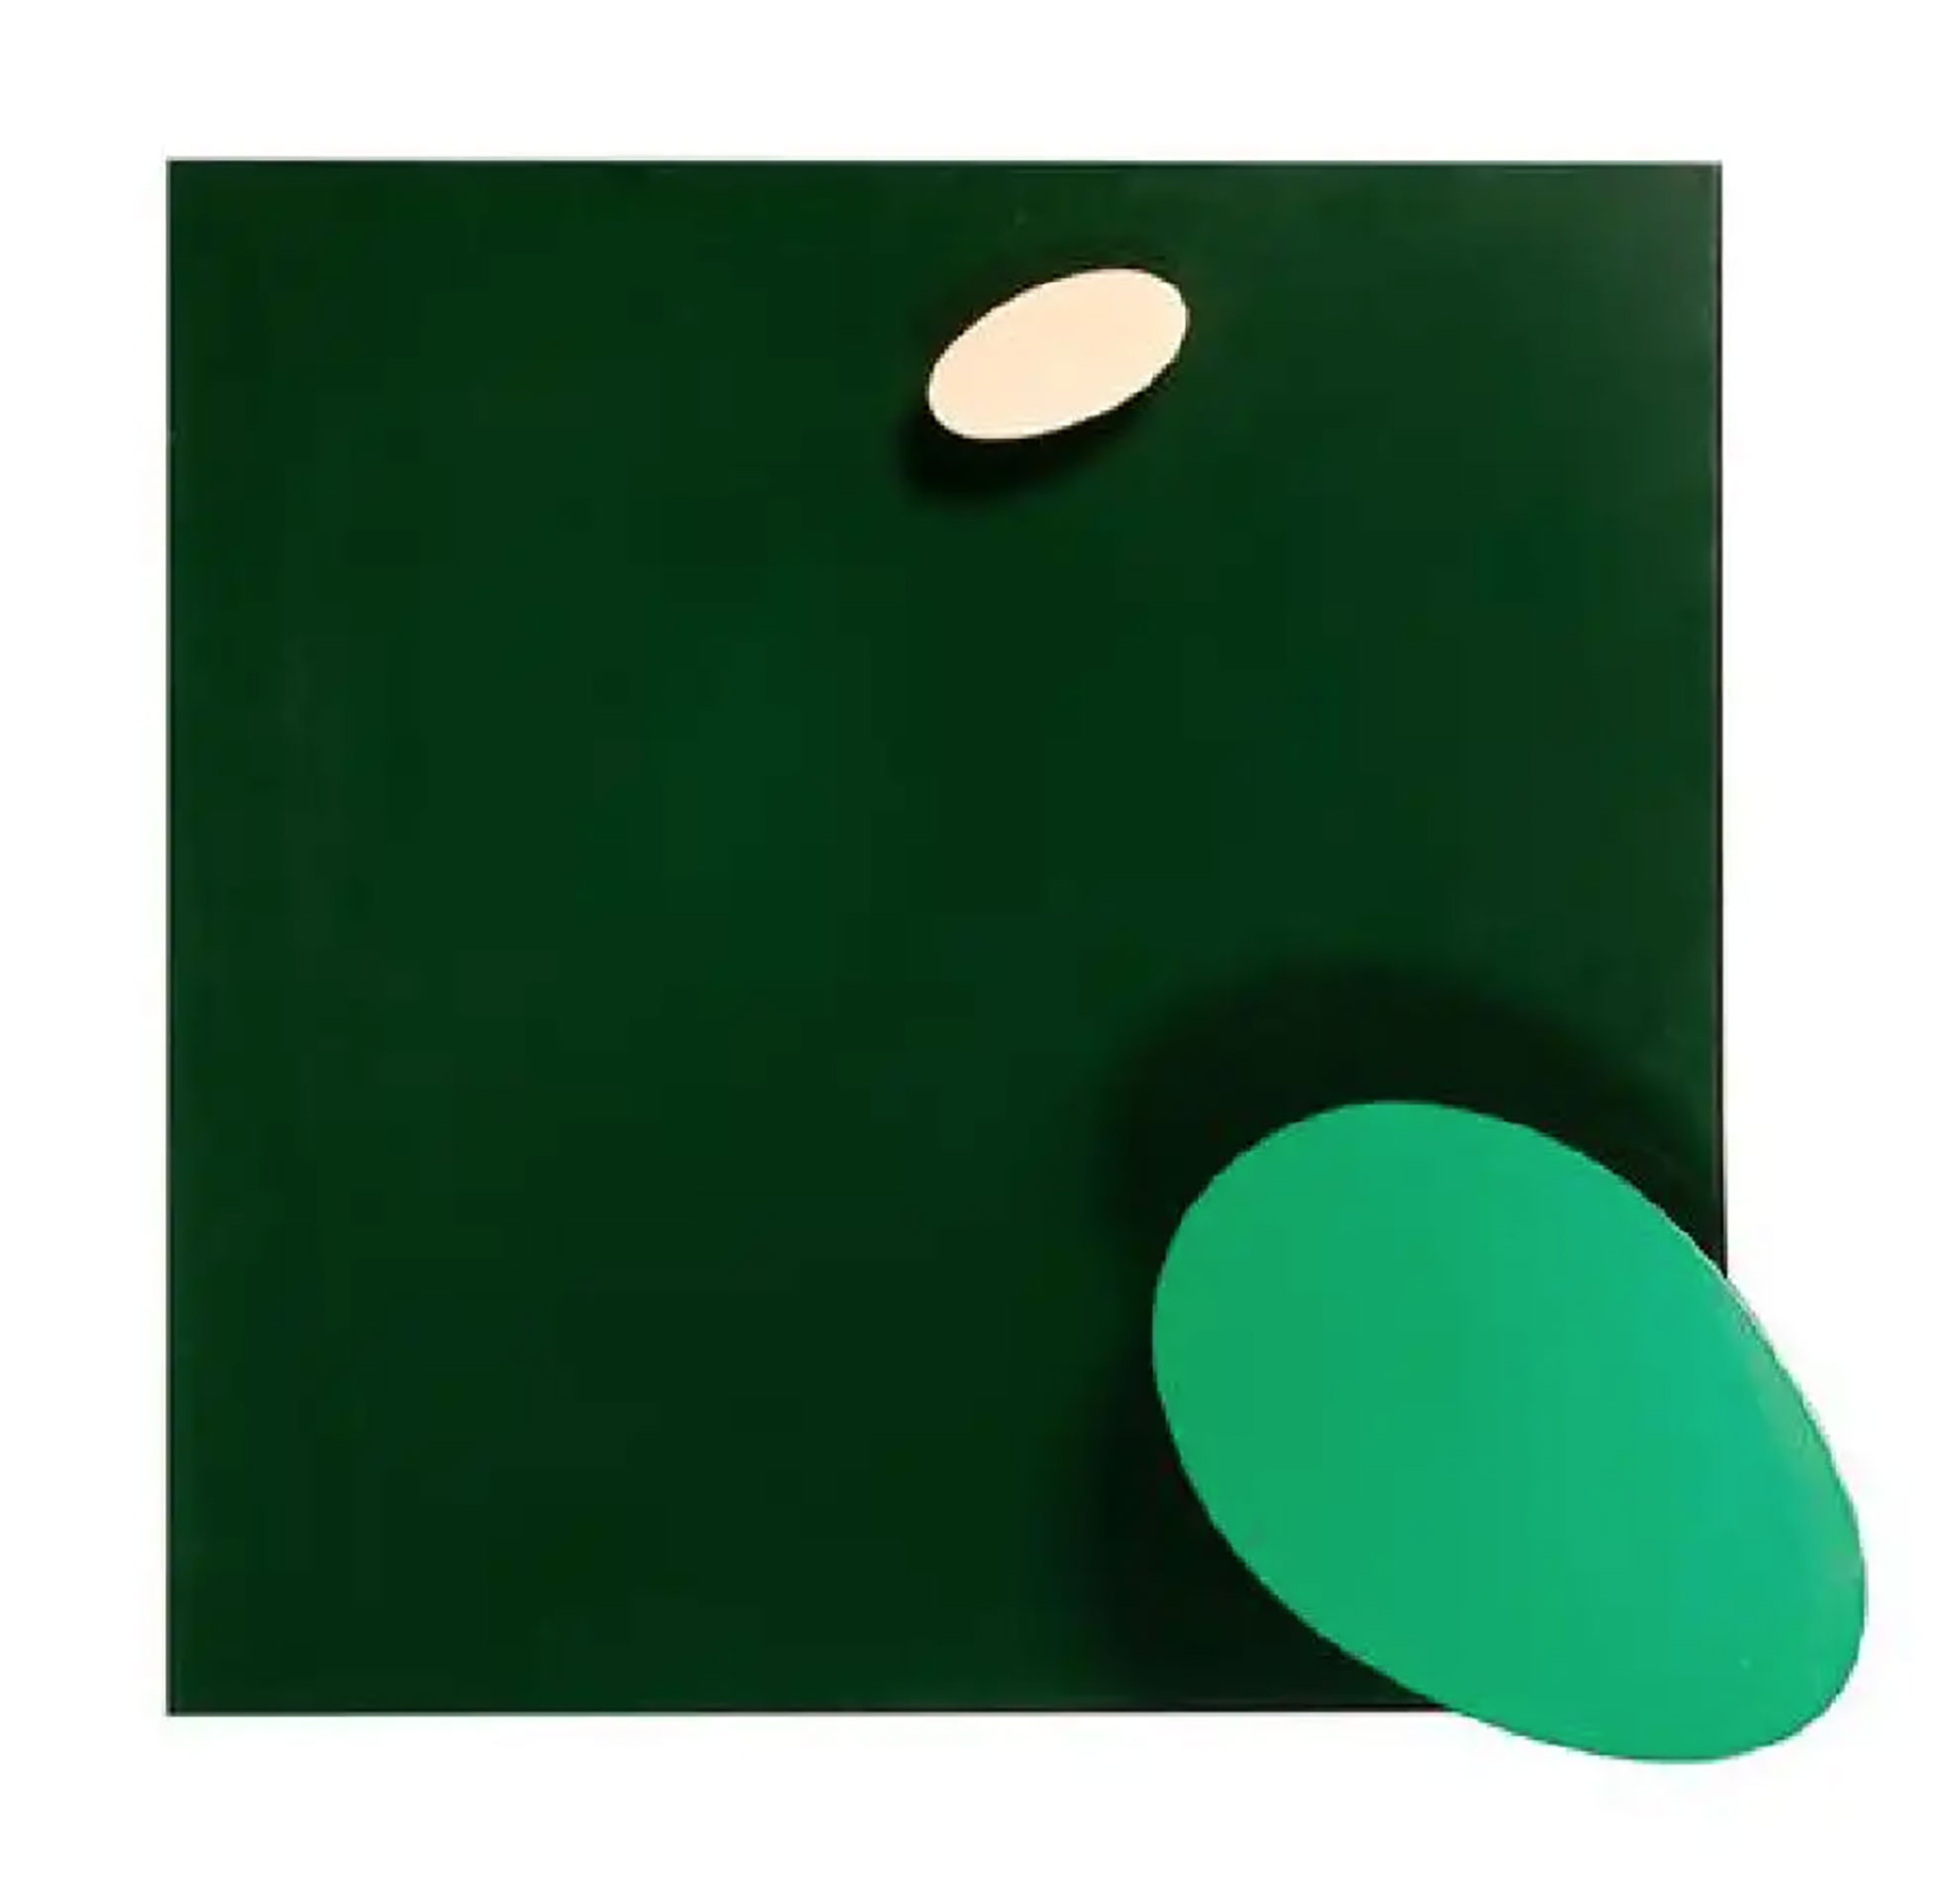 Morgan---Untitled-Green-Abstract-Composition.jpg